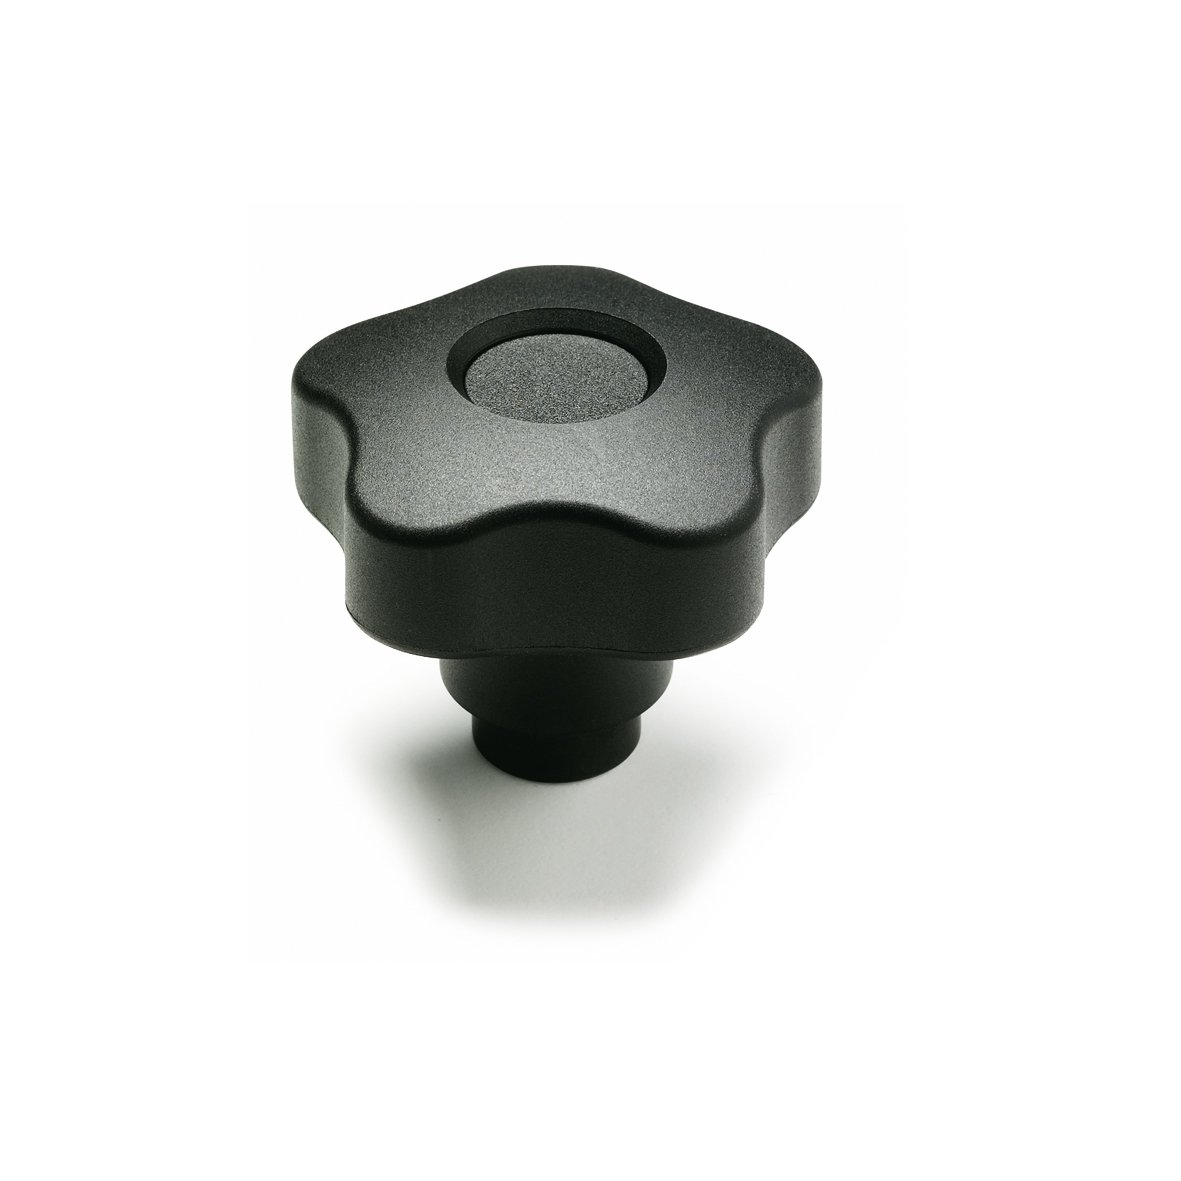 JW Winco Fiber Reinforced Technopolymer Plastic Safety Lobed Knob with Steel Tapped Insert, Threaded Hole, 1/4